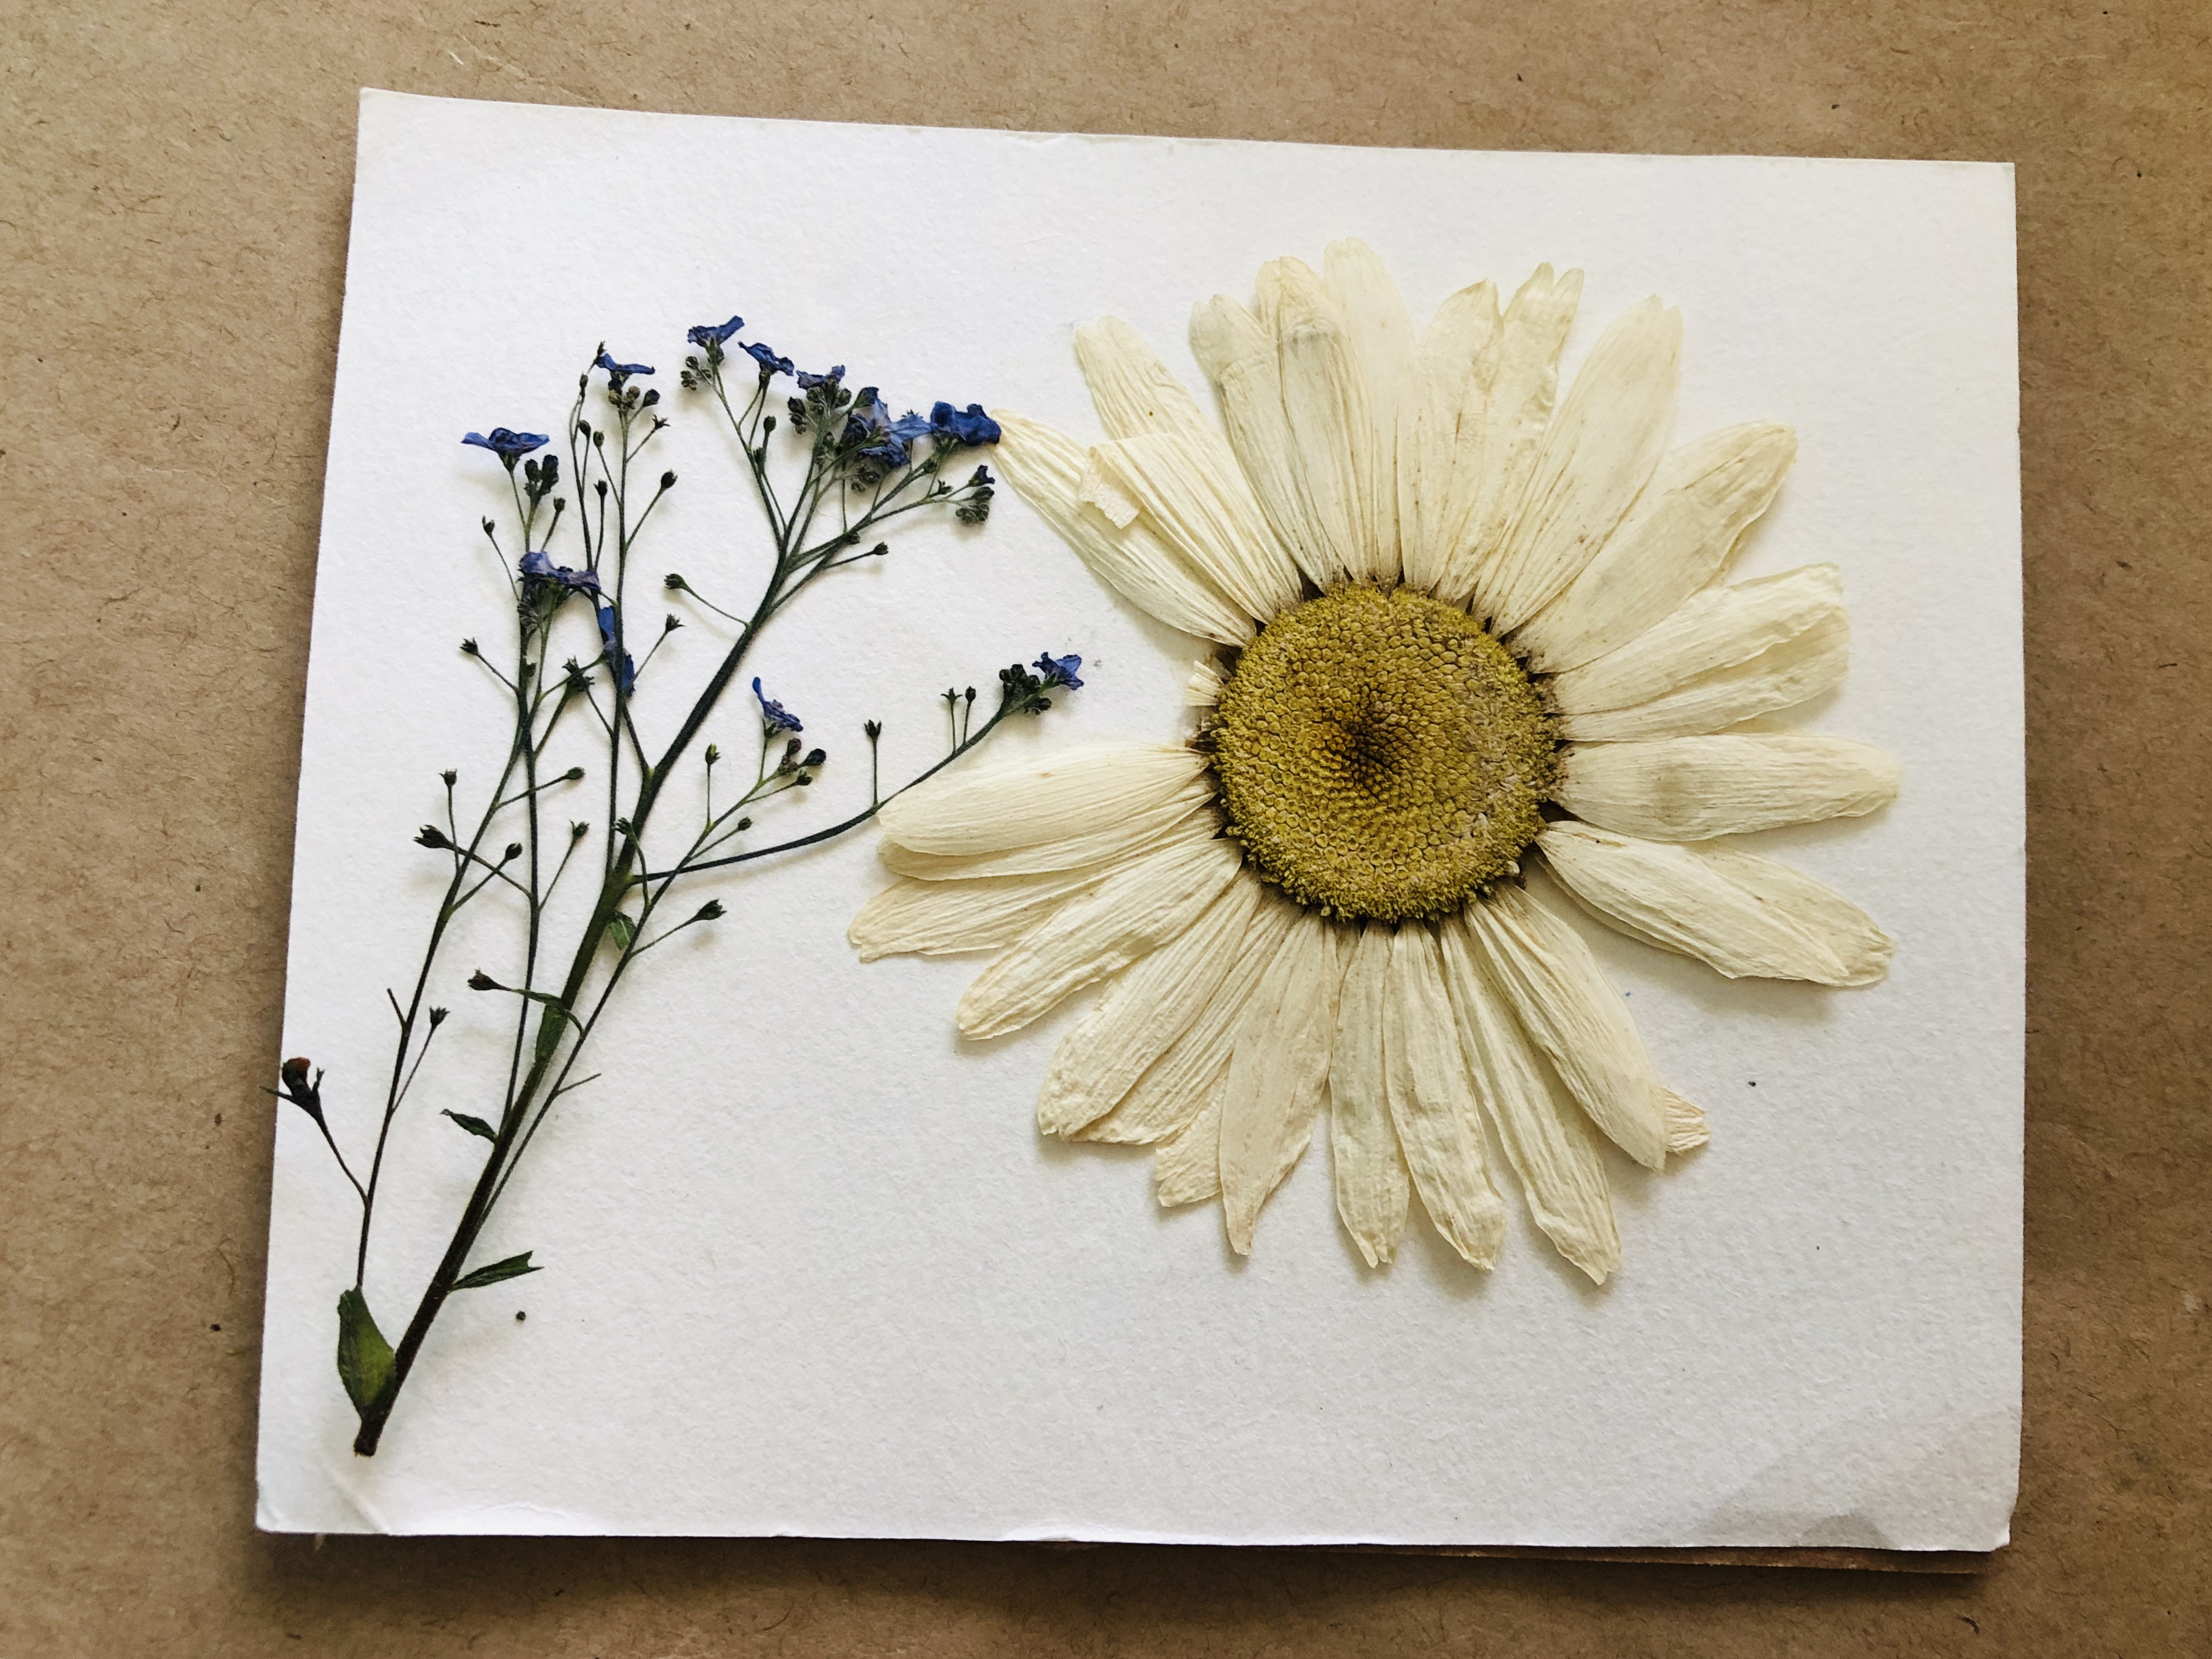 Pressed Flowers with the Simple Press